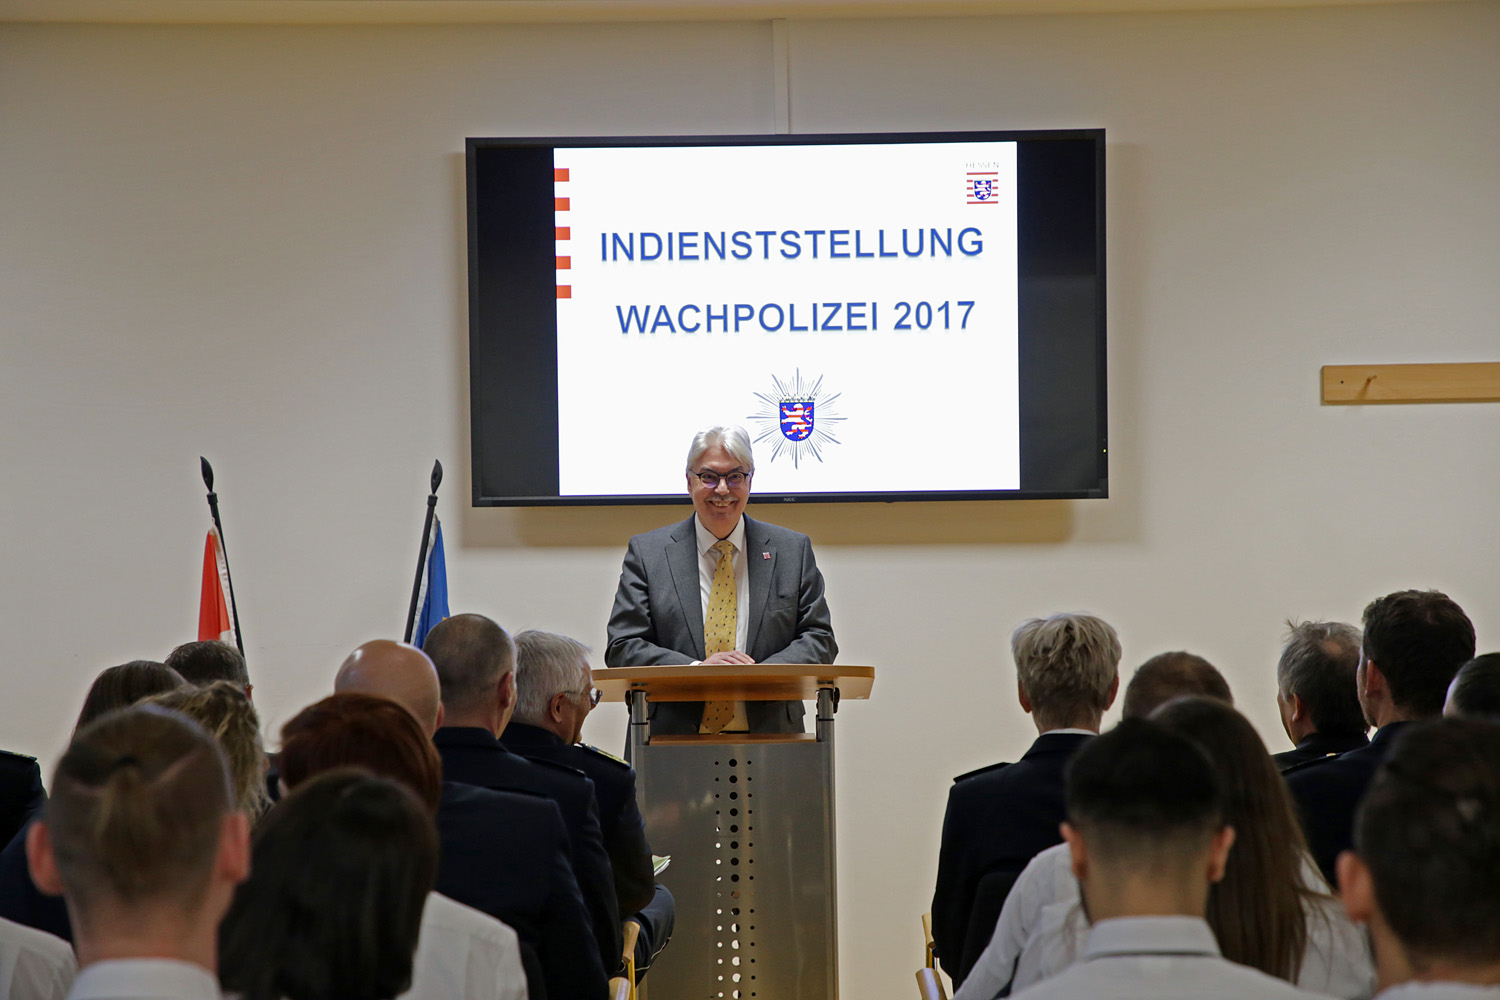 Indienststellung der Wachpolizei am 15.12.2017